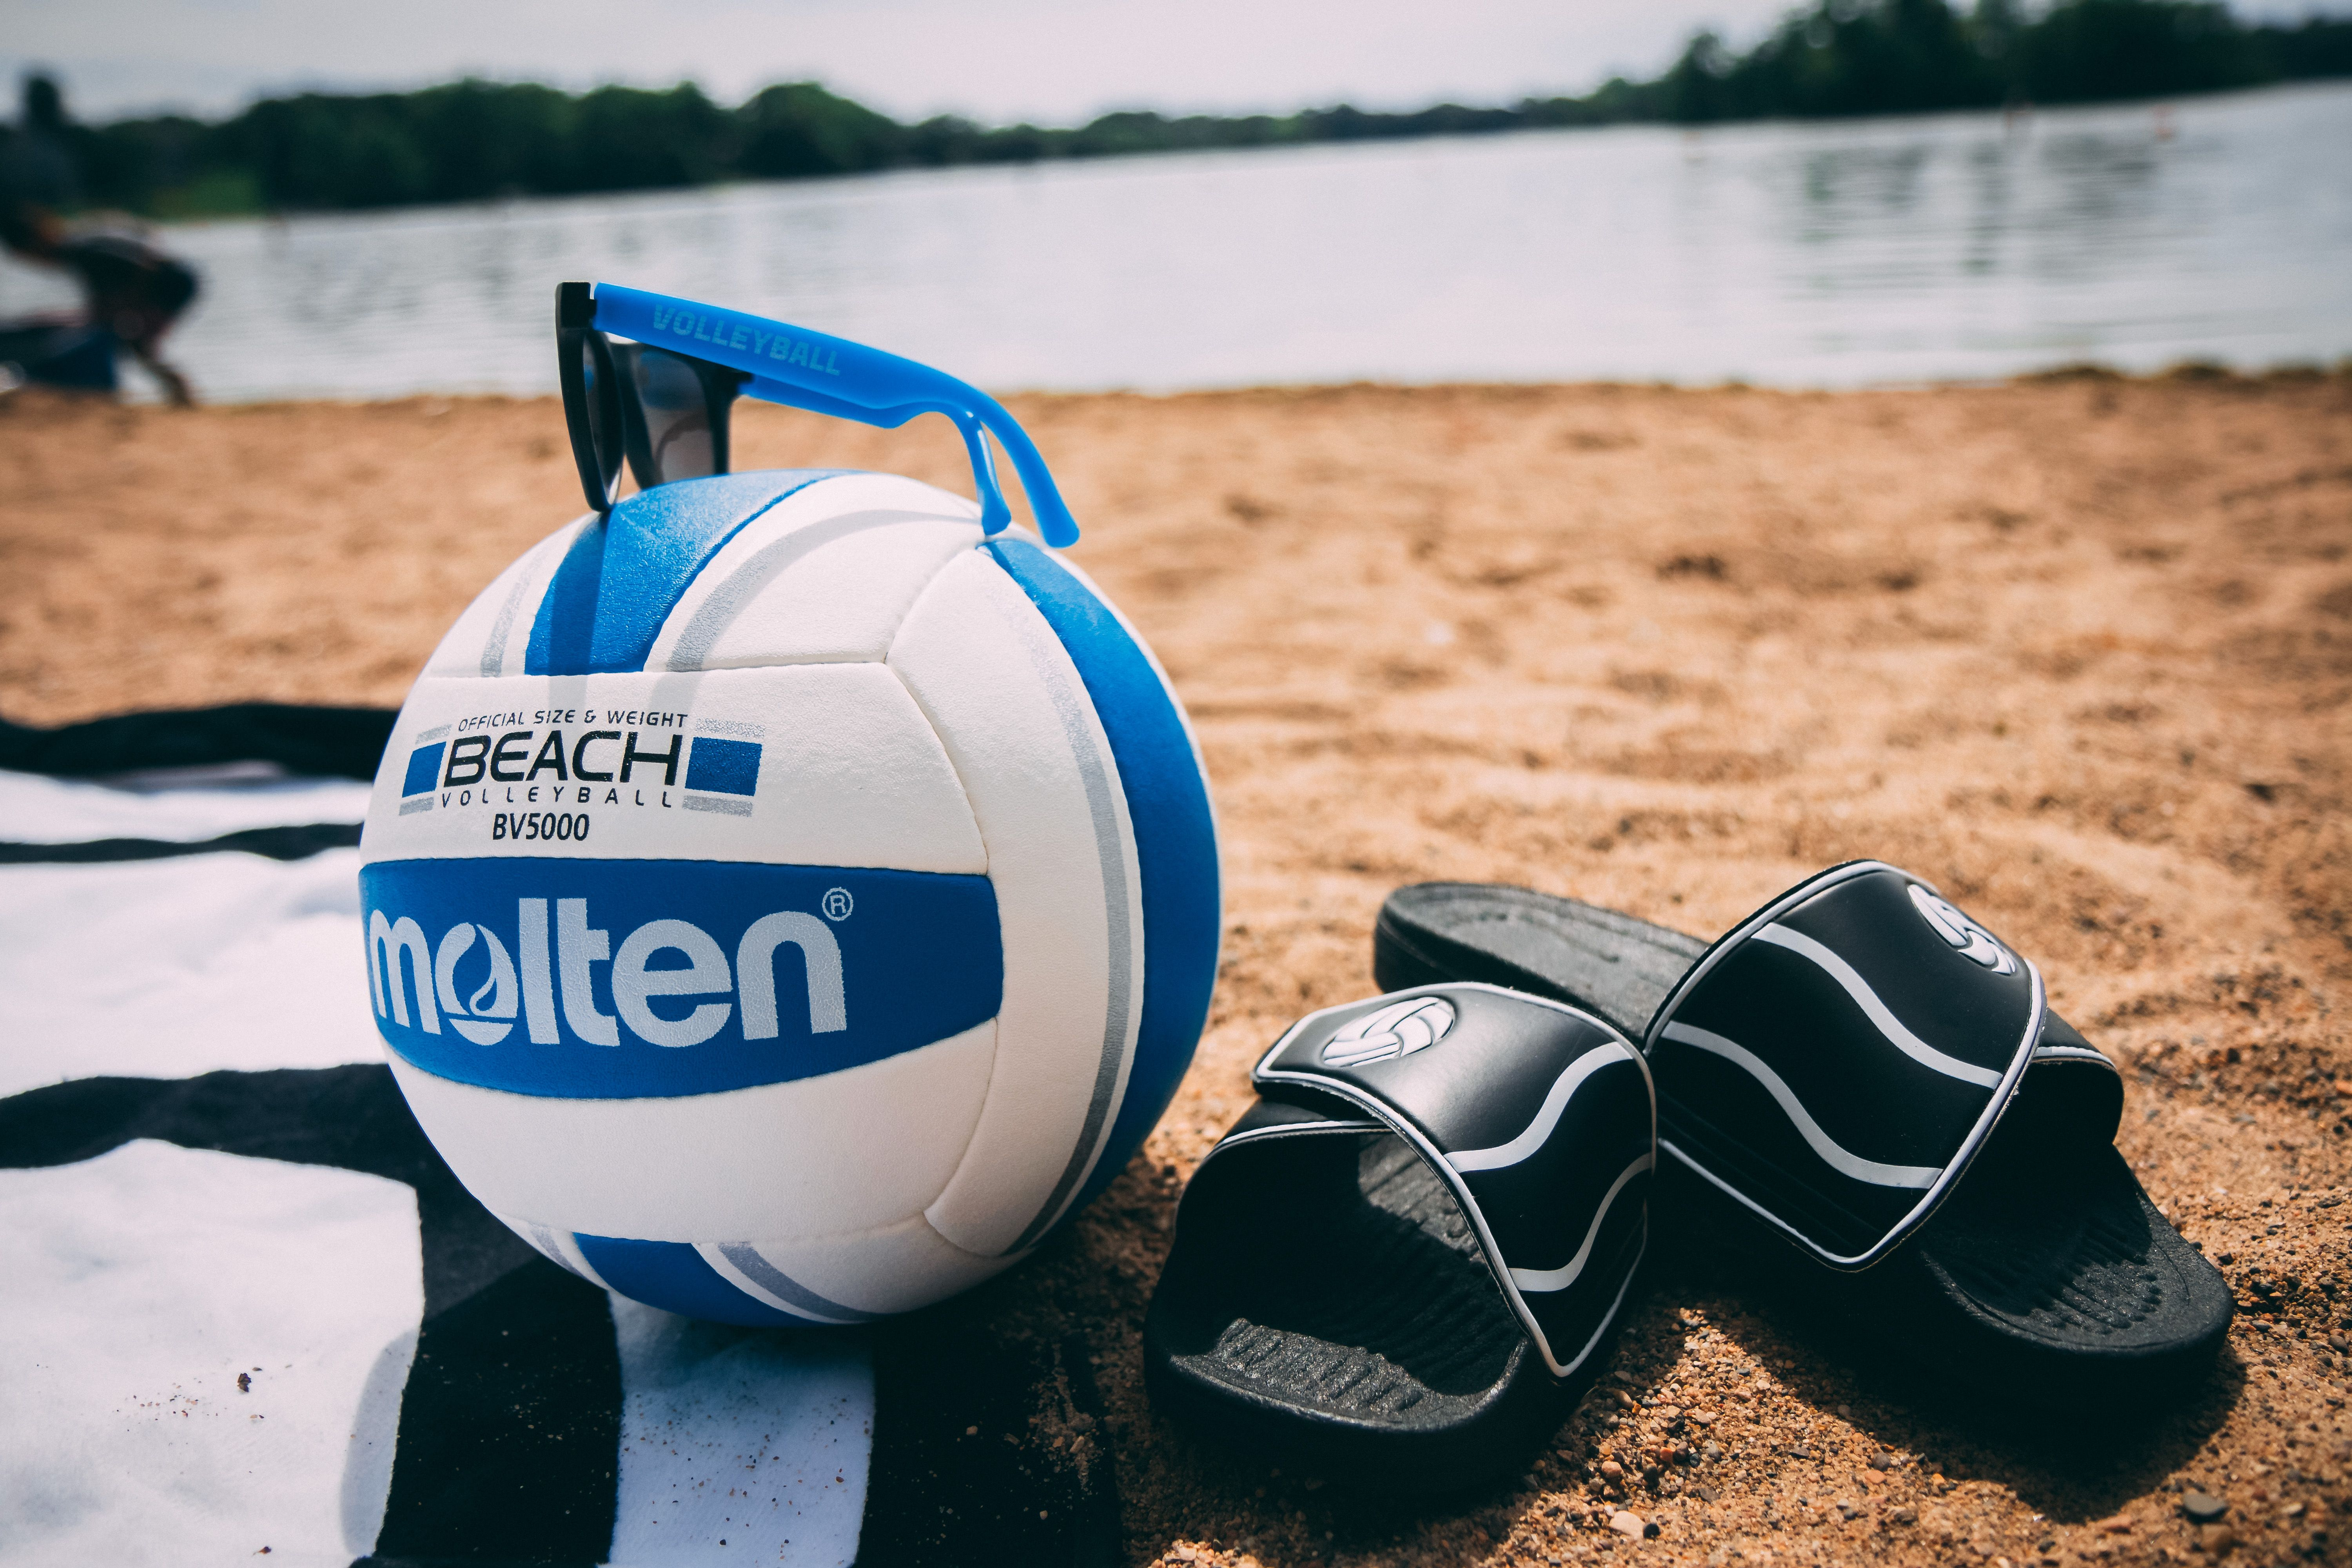 Pin By Midwest Volleyball Warehouse On Beach Volleyball In 2020 Beach Volleyball Volleyball Gear Beach Gear